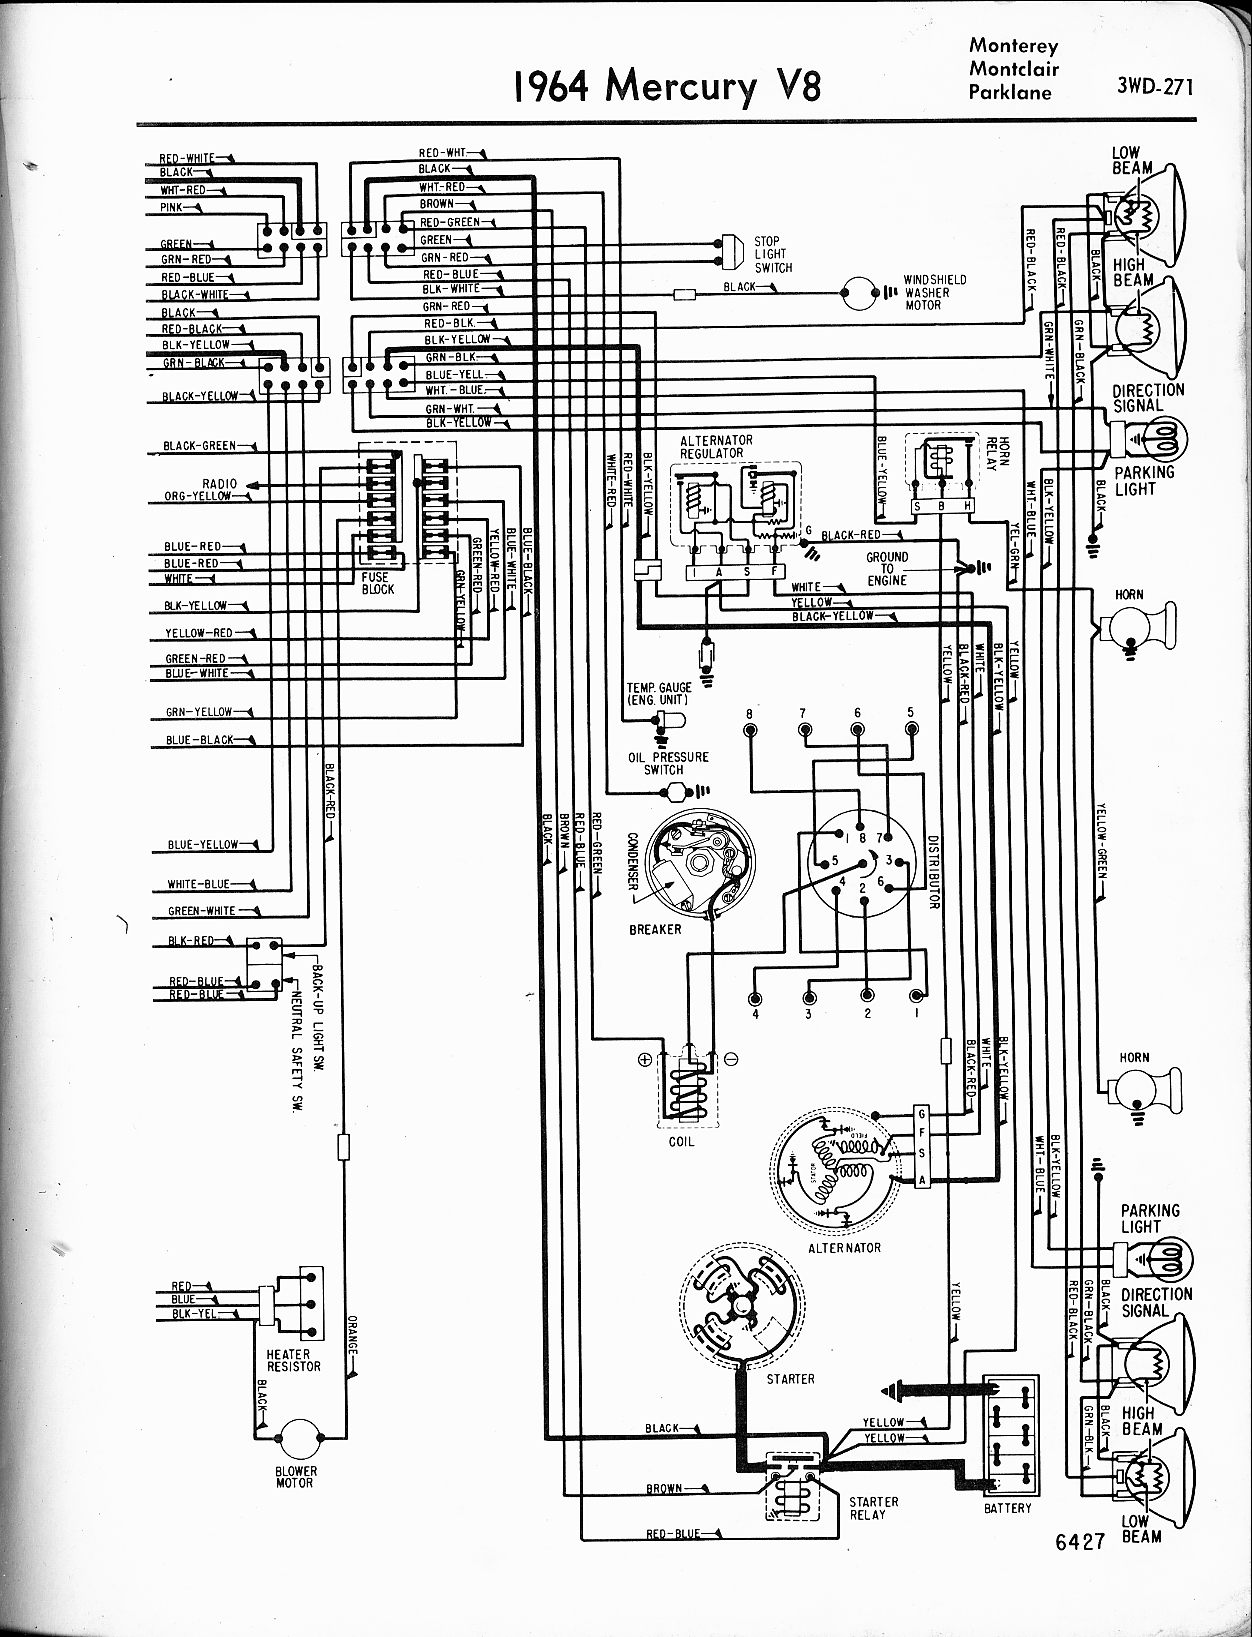 MWire5765 271 1964 thunderbird wiring diagram 1964 thunderbird stereo wiring  at reclaimingppi.co